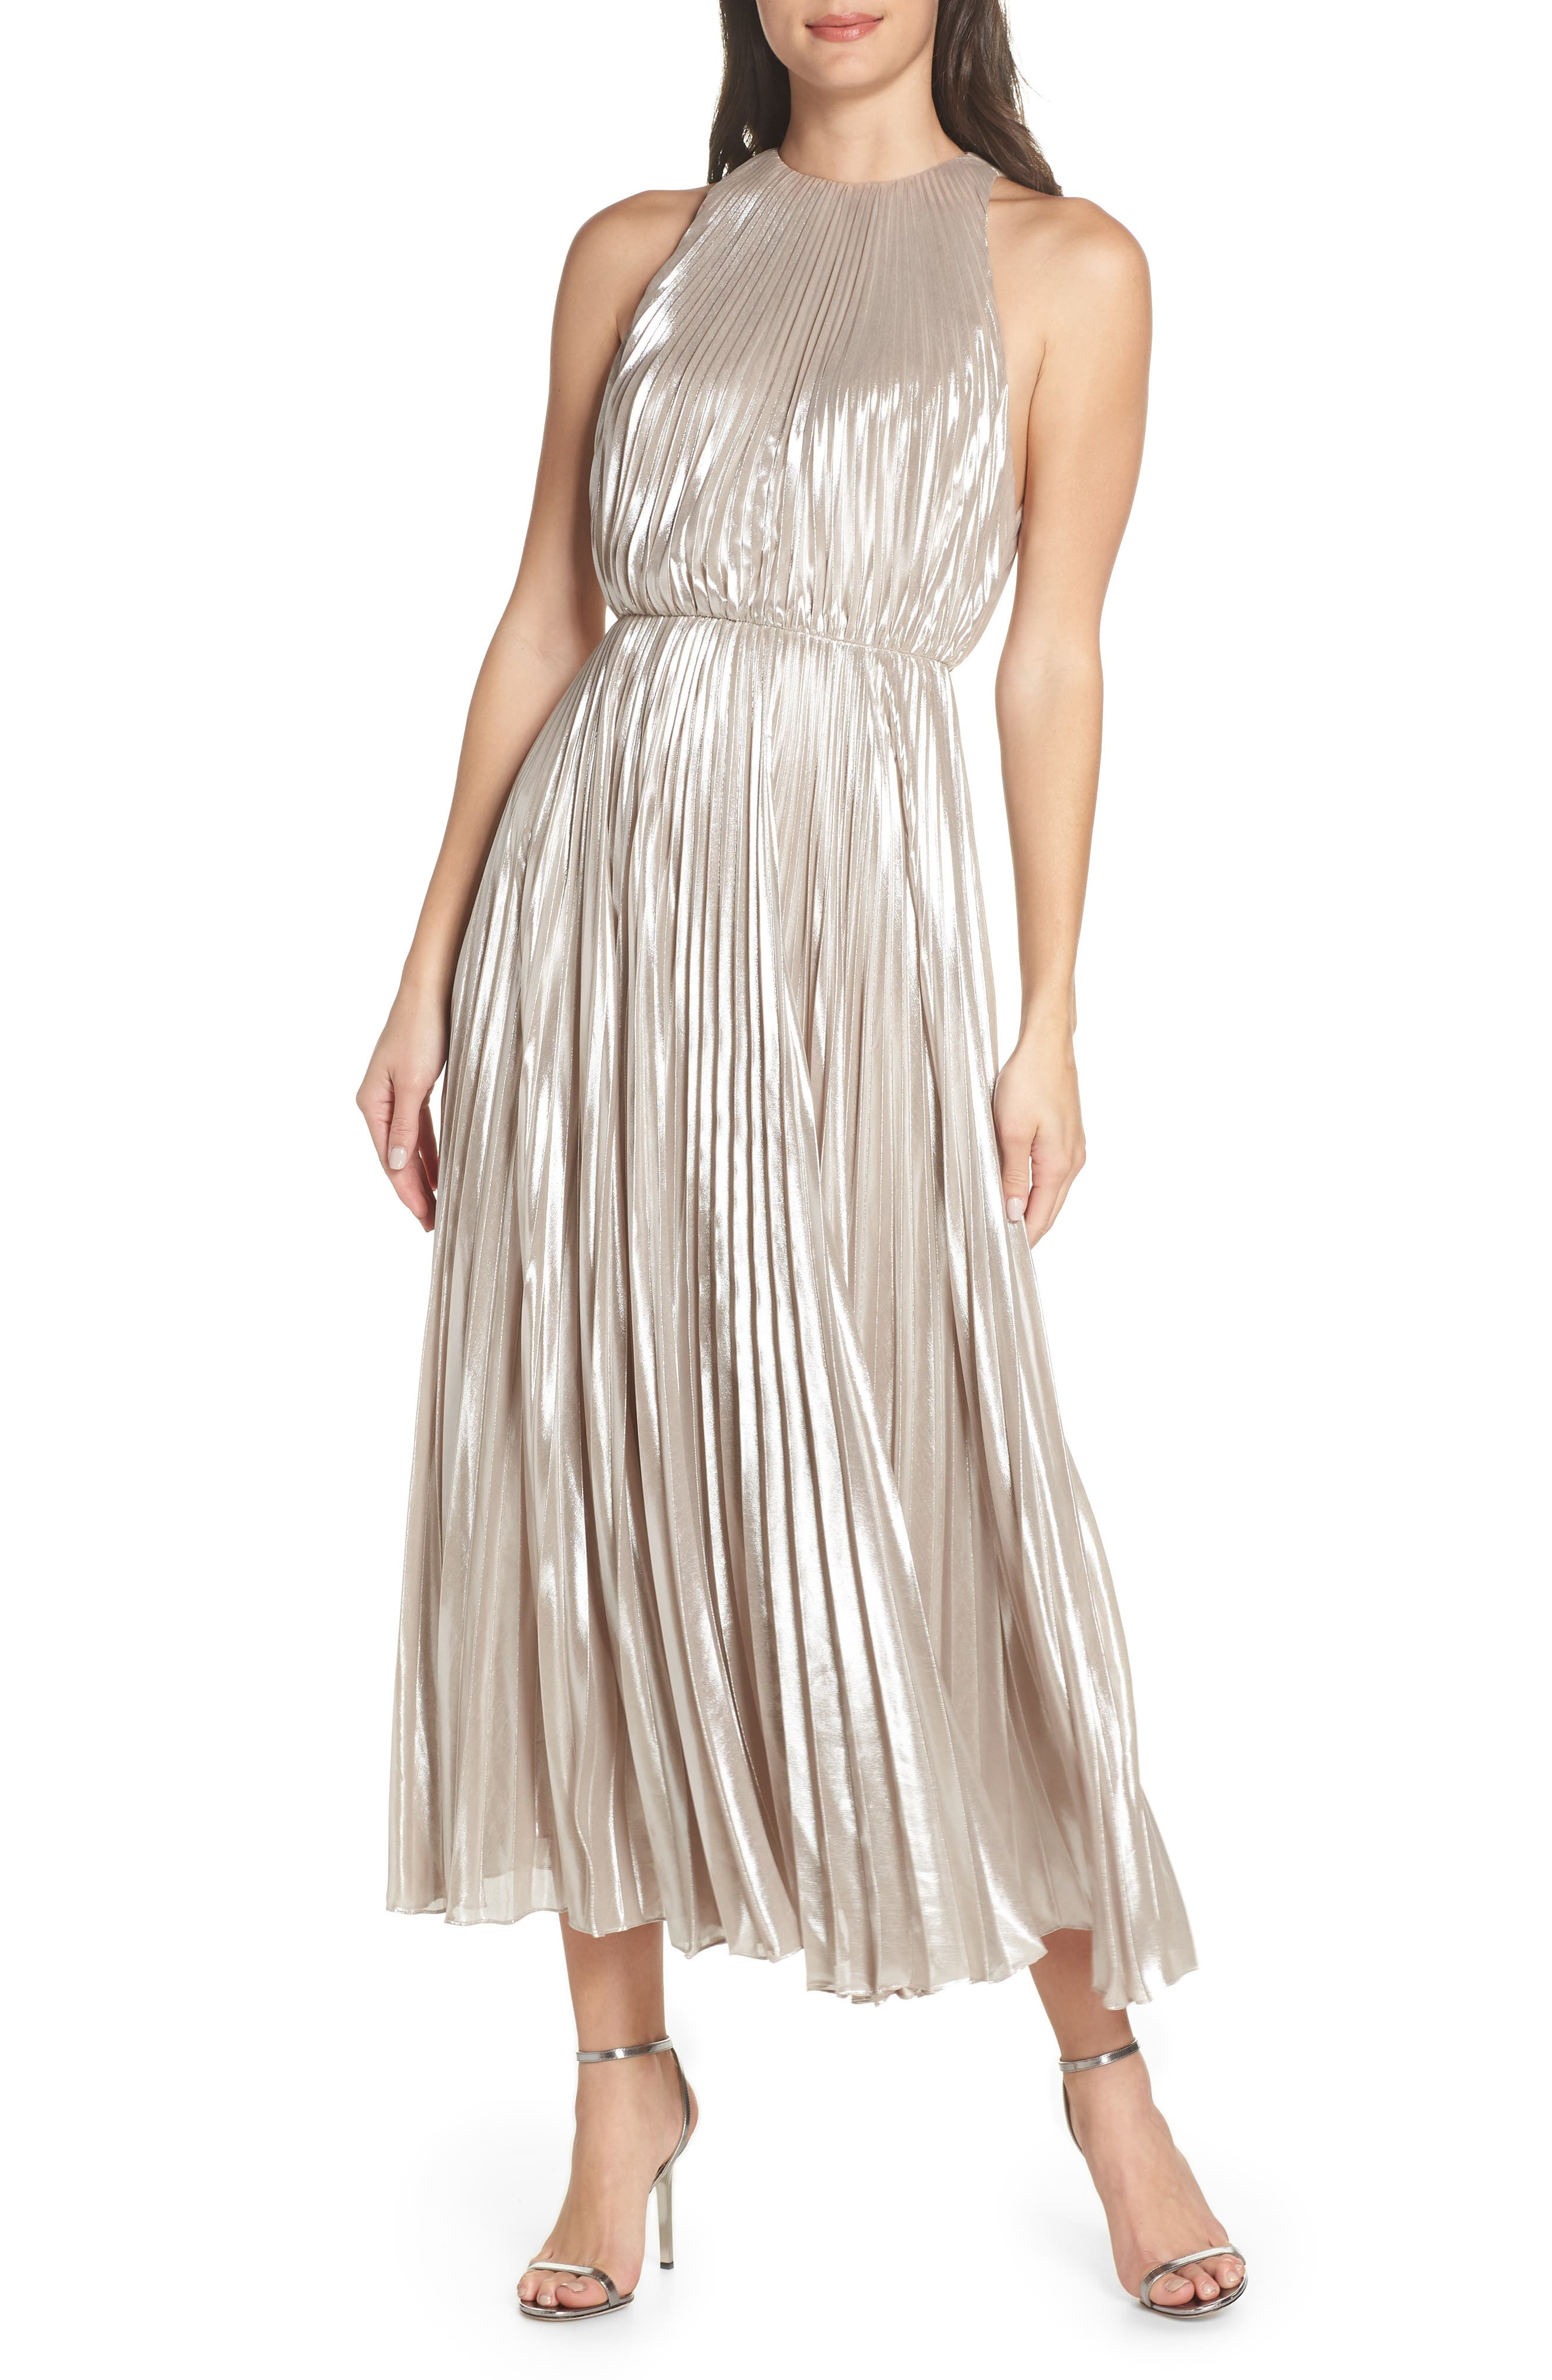 Ashley Metallic Pleated Gown in Champagne